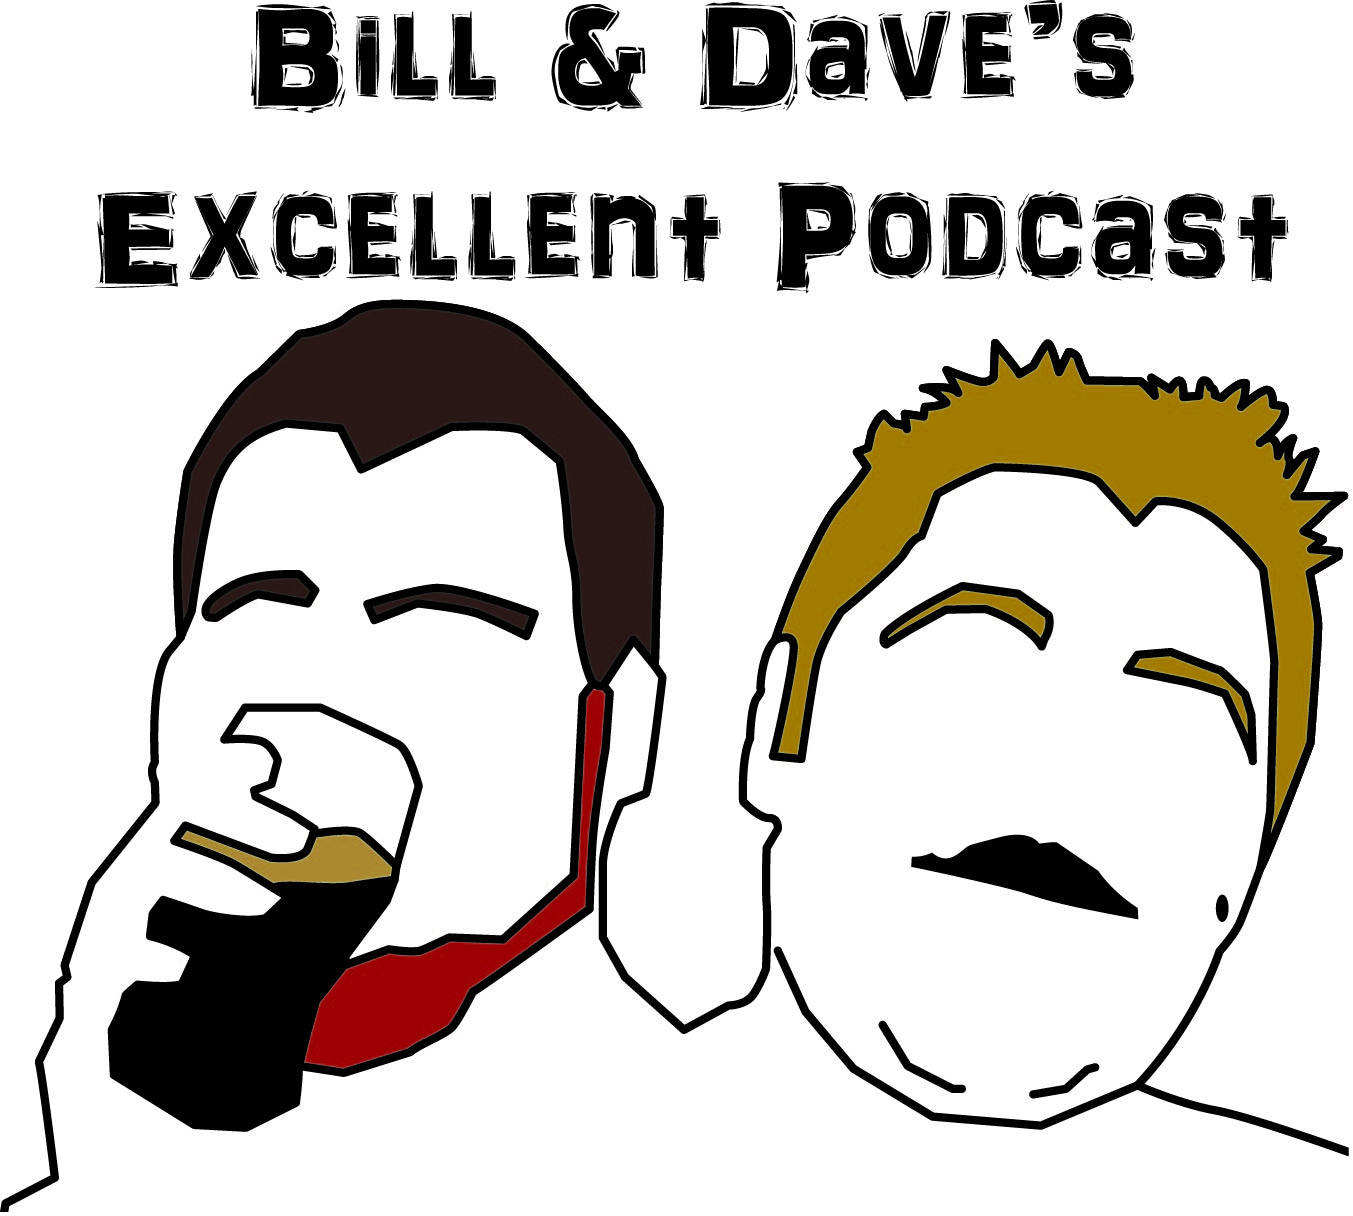 Artwork by Todd Tuttle    Recorded in Chicago, IL, two friends (Bill & Dave) discuss whatever is on their minds. Everything from current events and music to sports and what they did over the weekend. Add in an occasional guest, and there you have it. Please enjoy and subscribe !